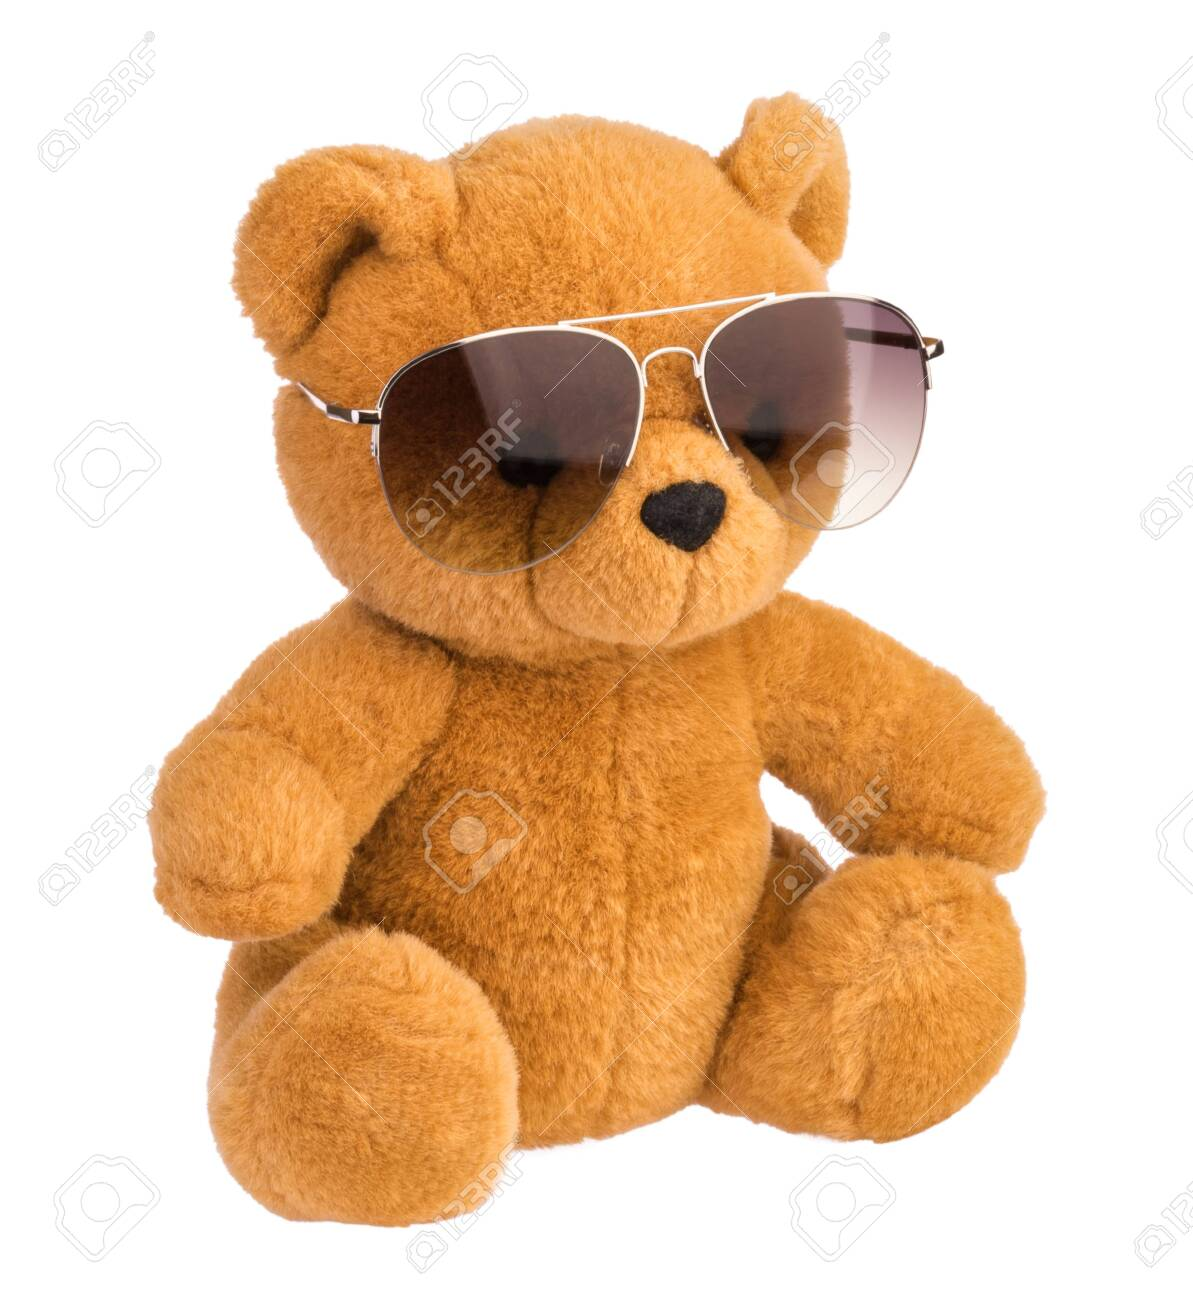 toy bear wearing sunglasses isolated clipping path - 125405658